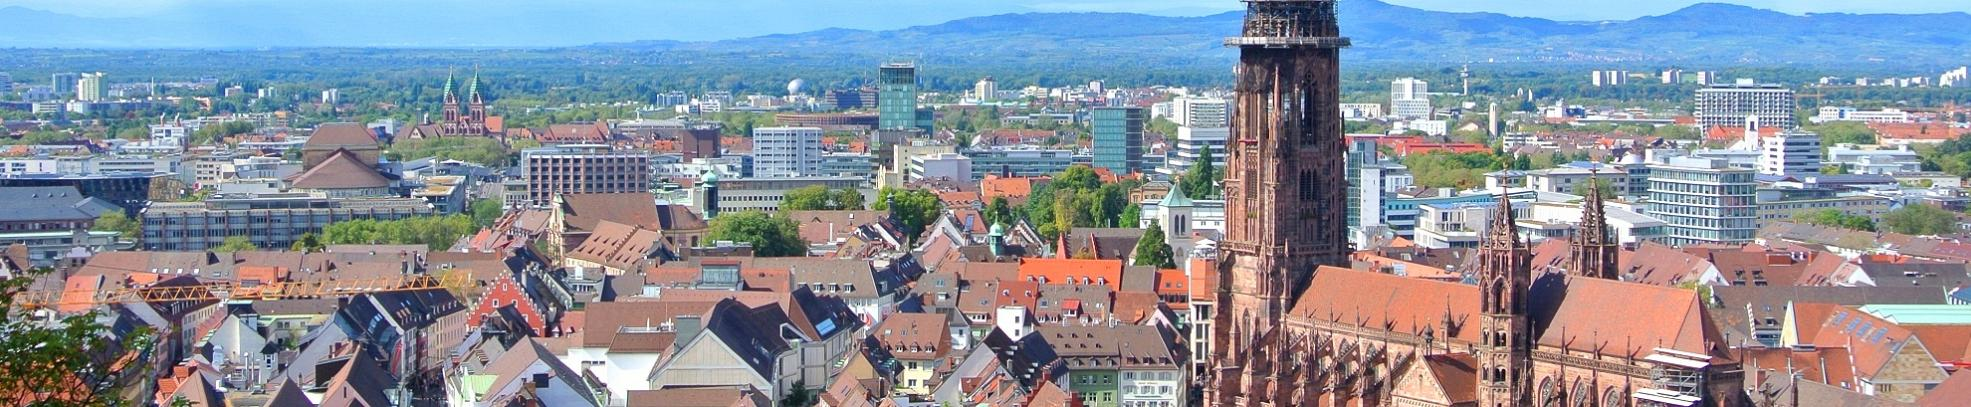 Destination of the month: Freiburg